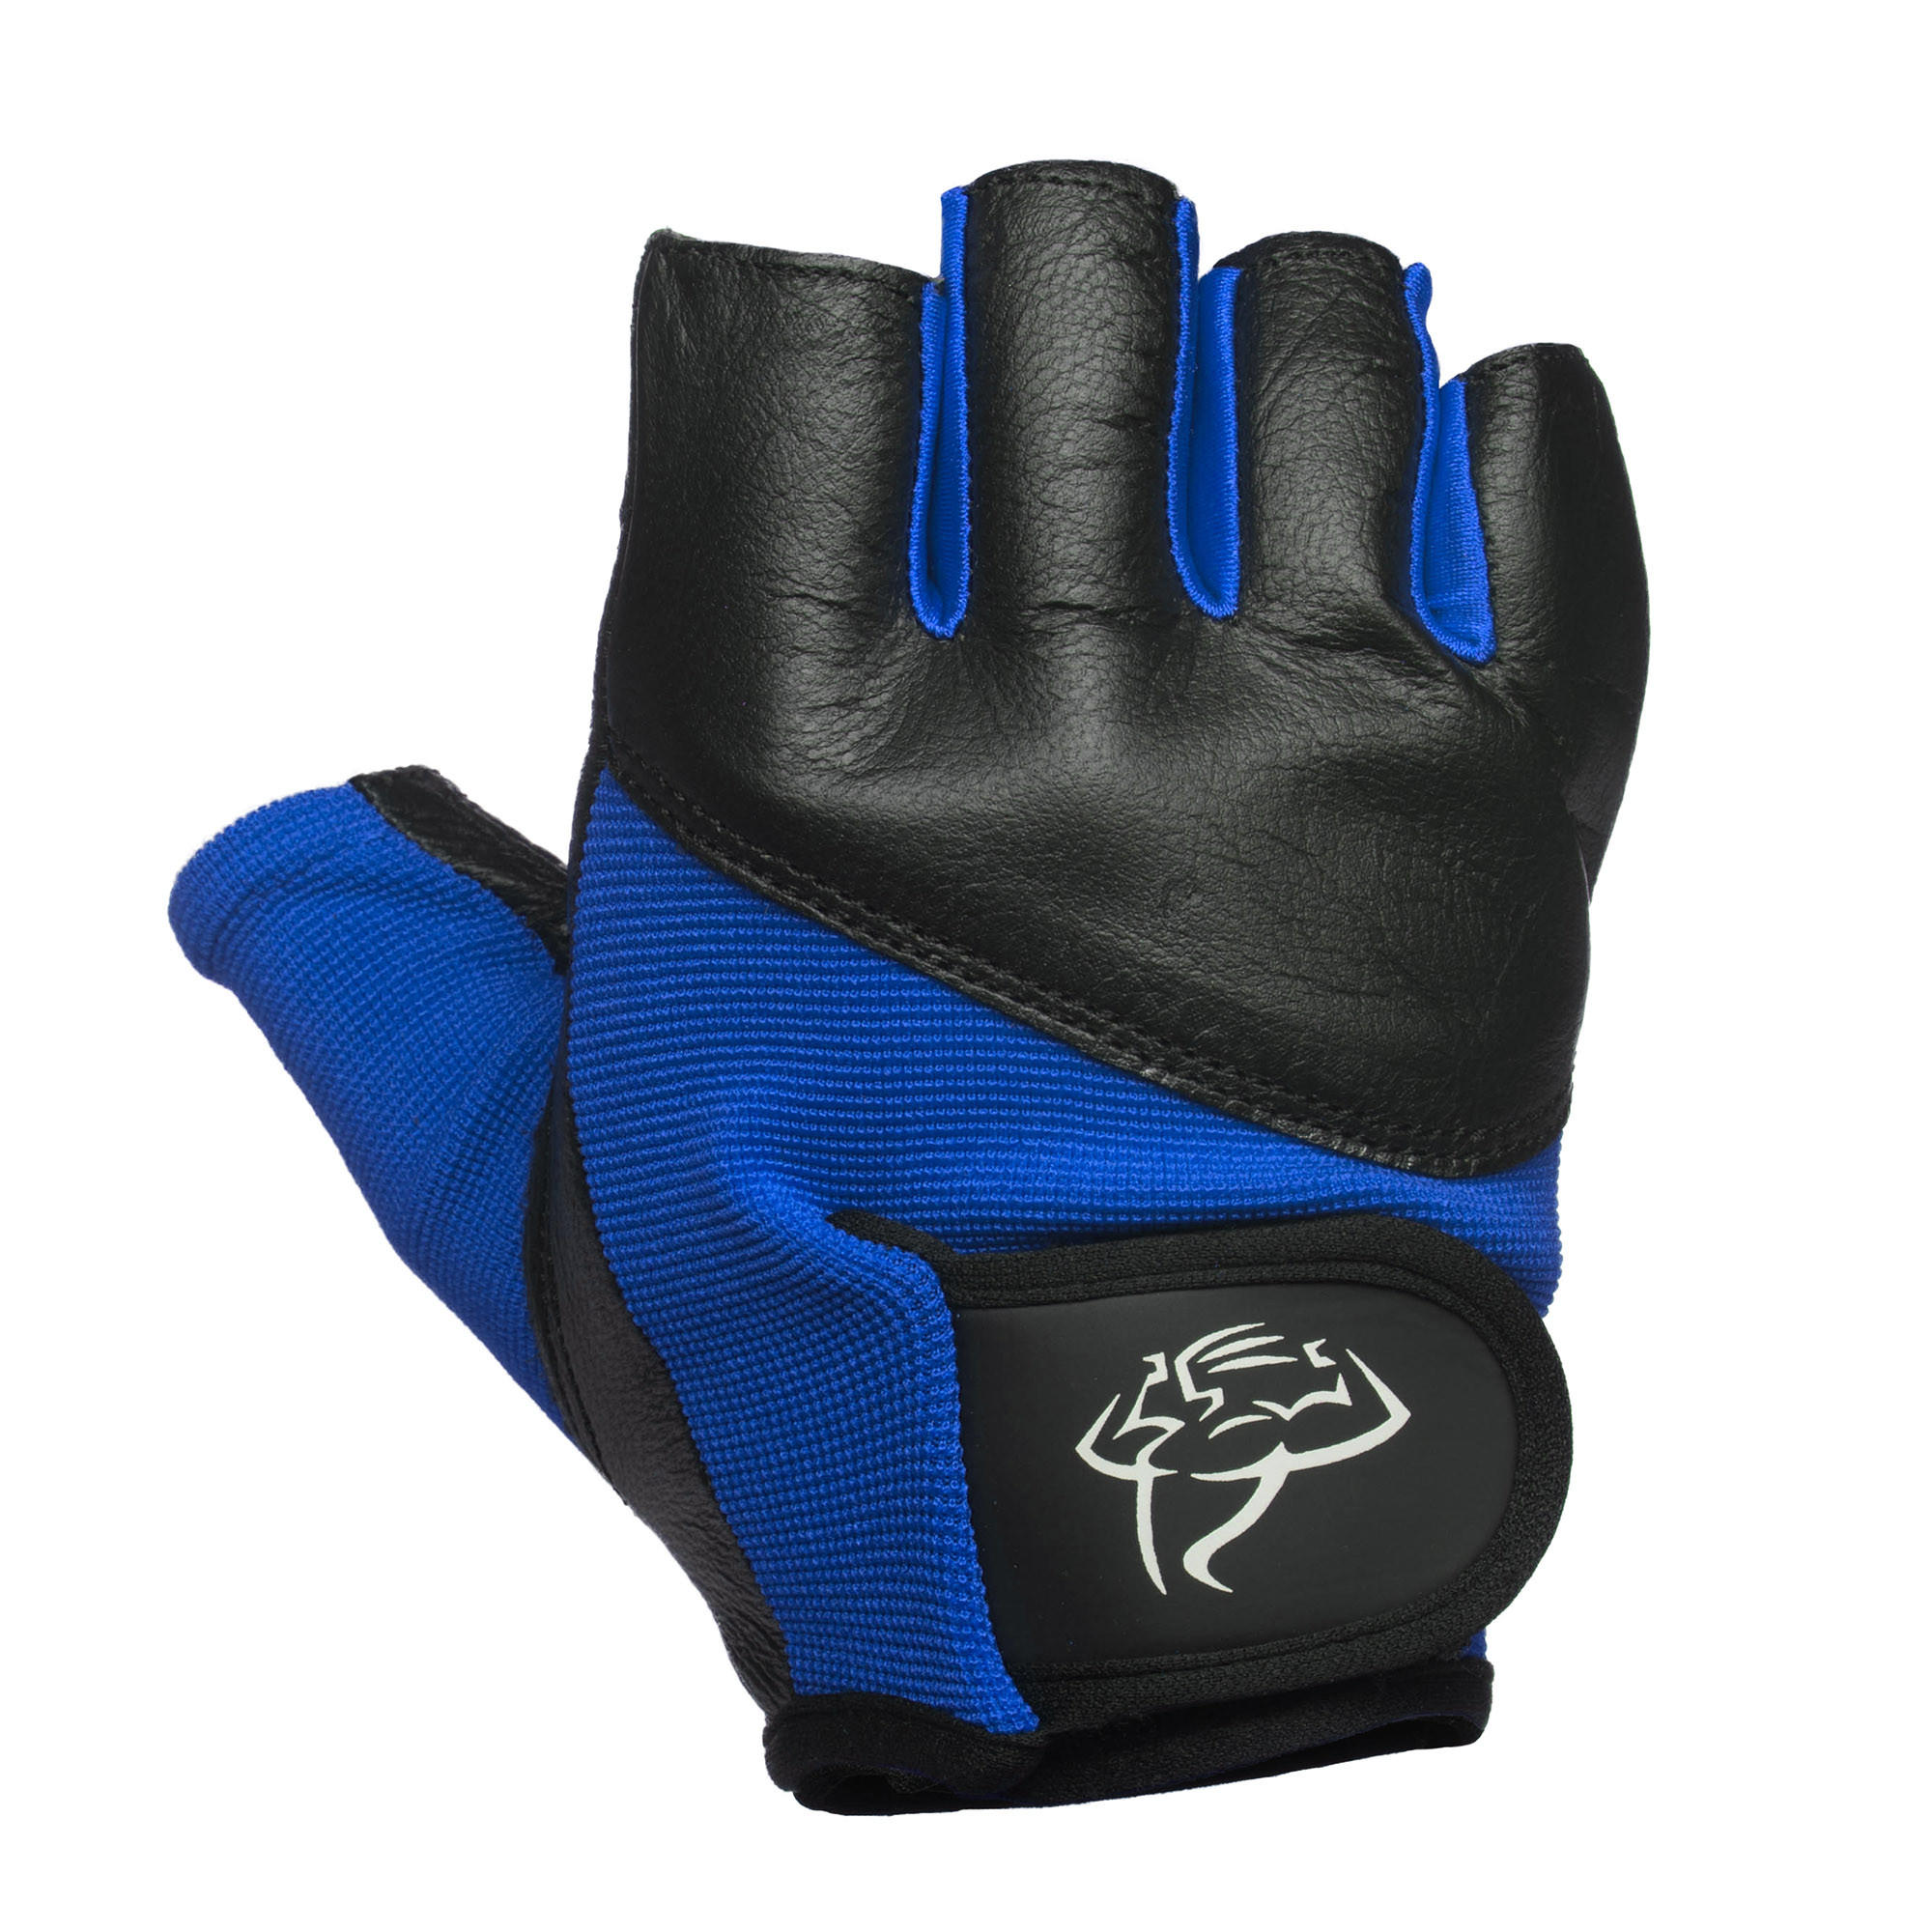 Black Leather Weight Lifting Workout Gloves: Mens Weight Lifting Gloves / Fingerless From Exercise